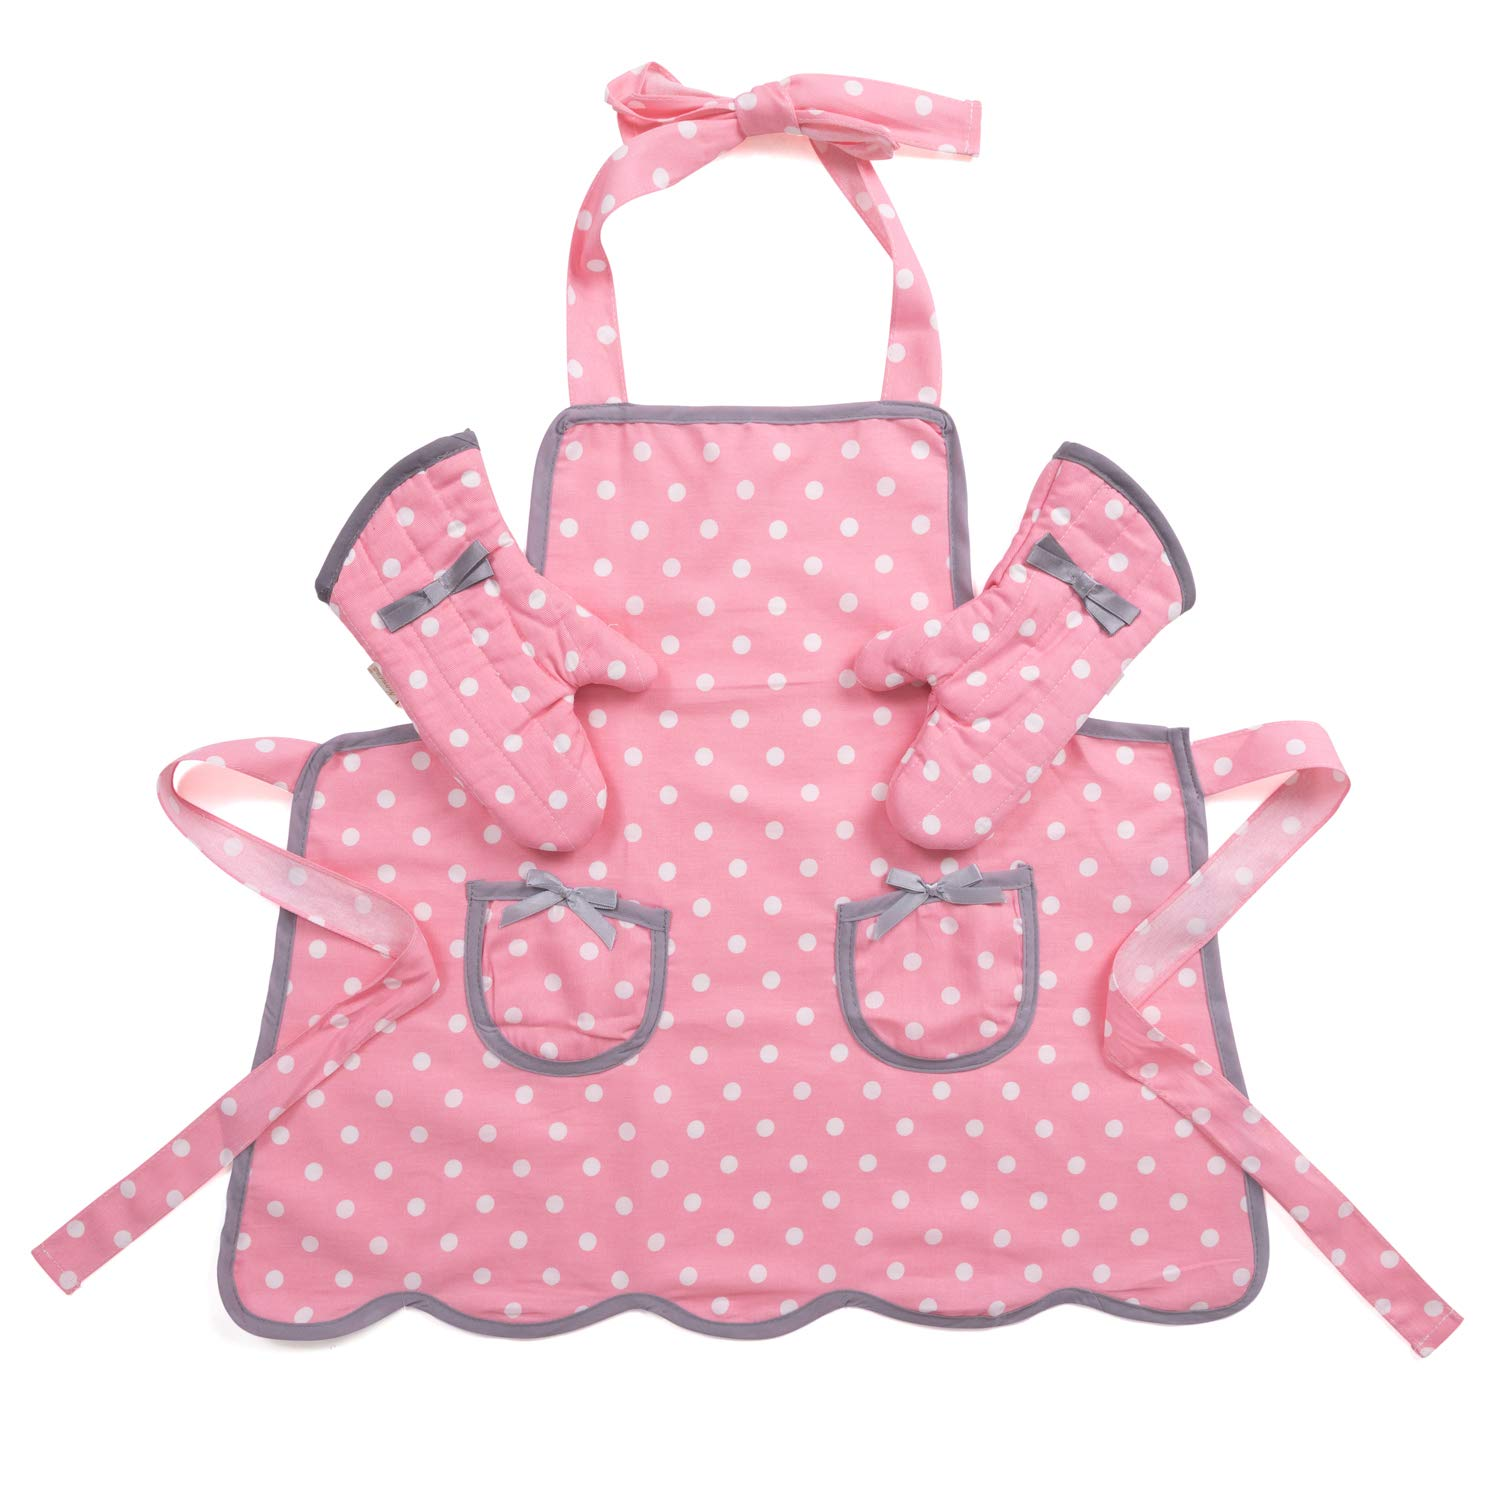 NEOVIVA Kids Apron and Kids Oven Mitts Set for Play Kitchen, Cute Polka Dots Toddler Kitchen Linen Set